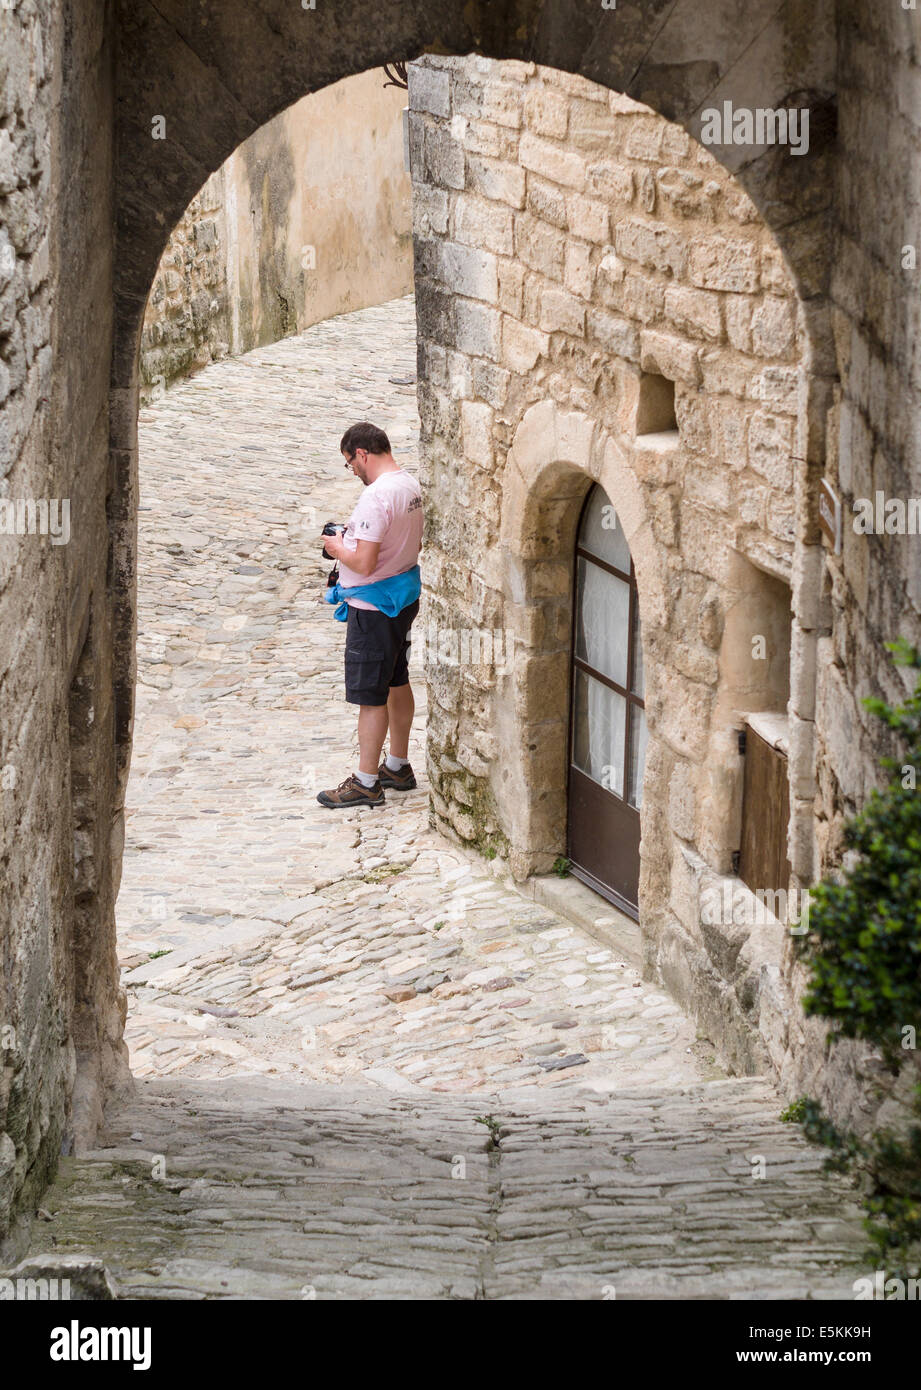 Chimping a Photograph. A tourist stands in the old Medieval village of Lacoste and checks the exposure on his SLR - Stock Image